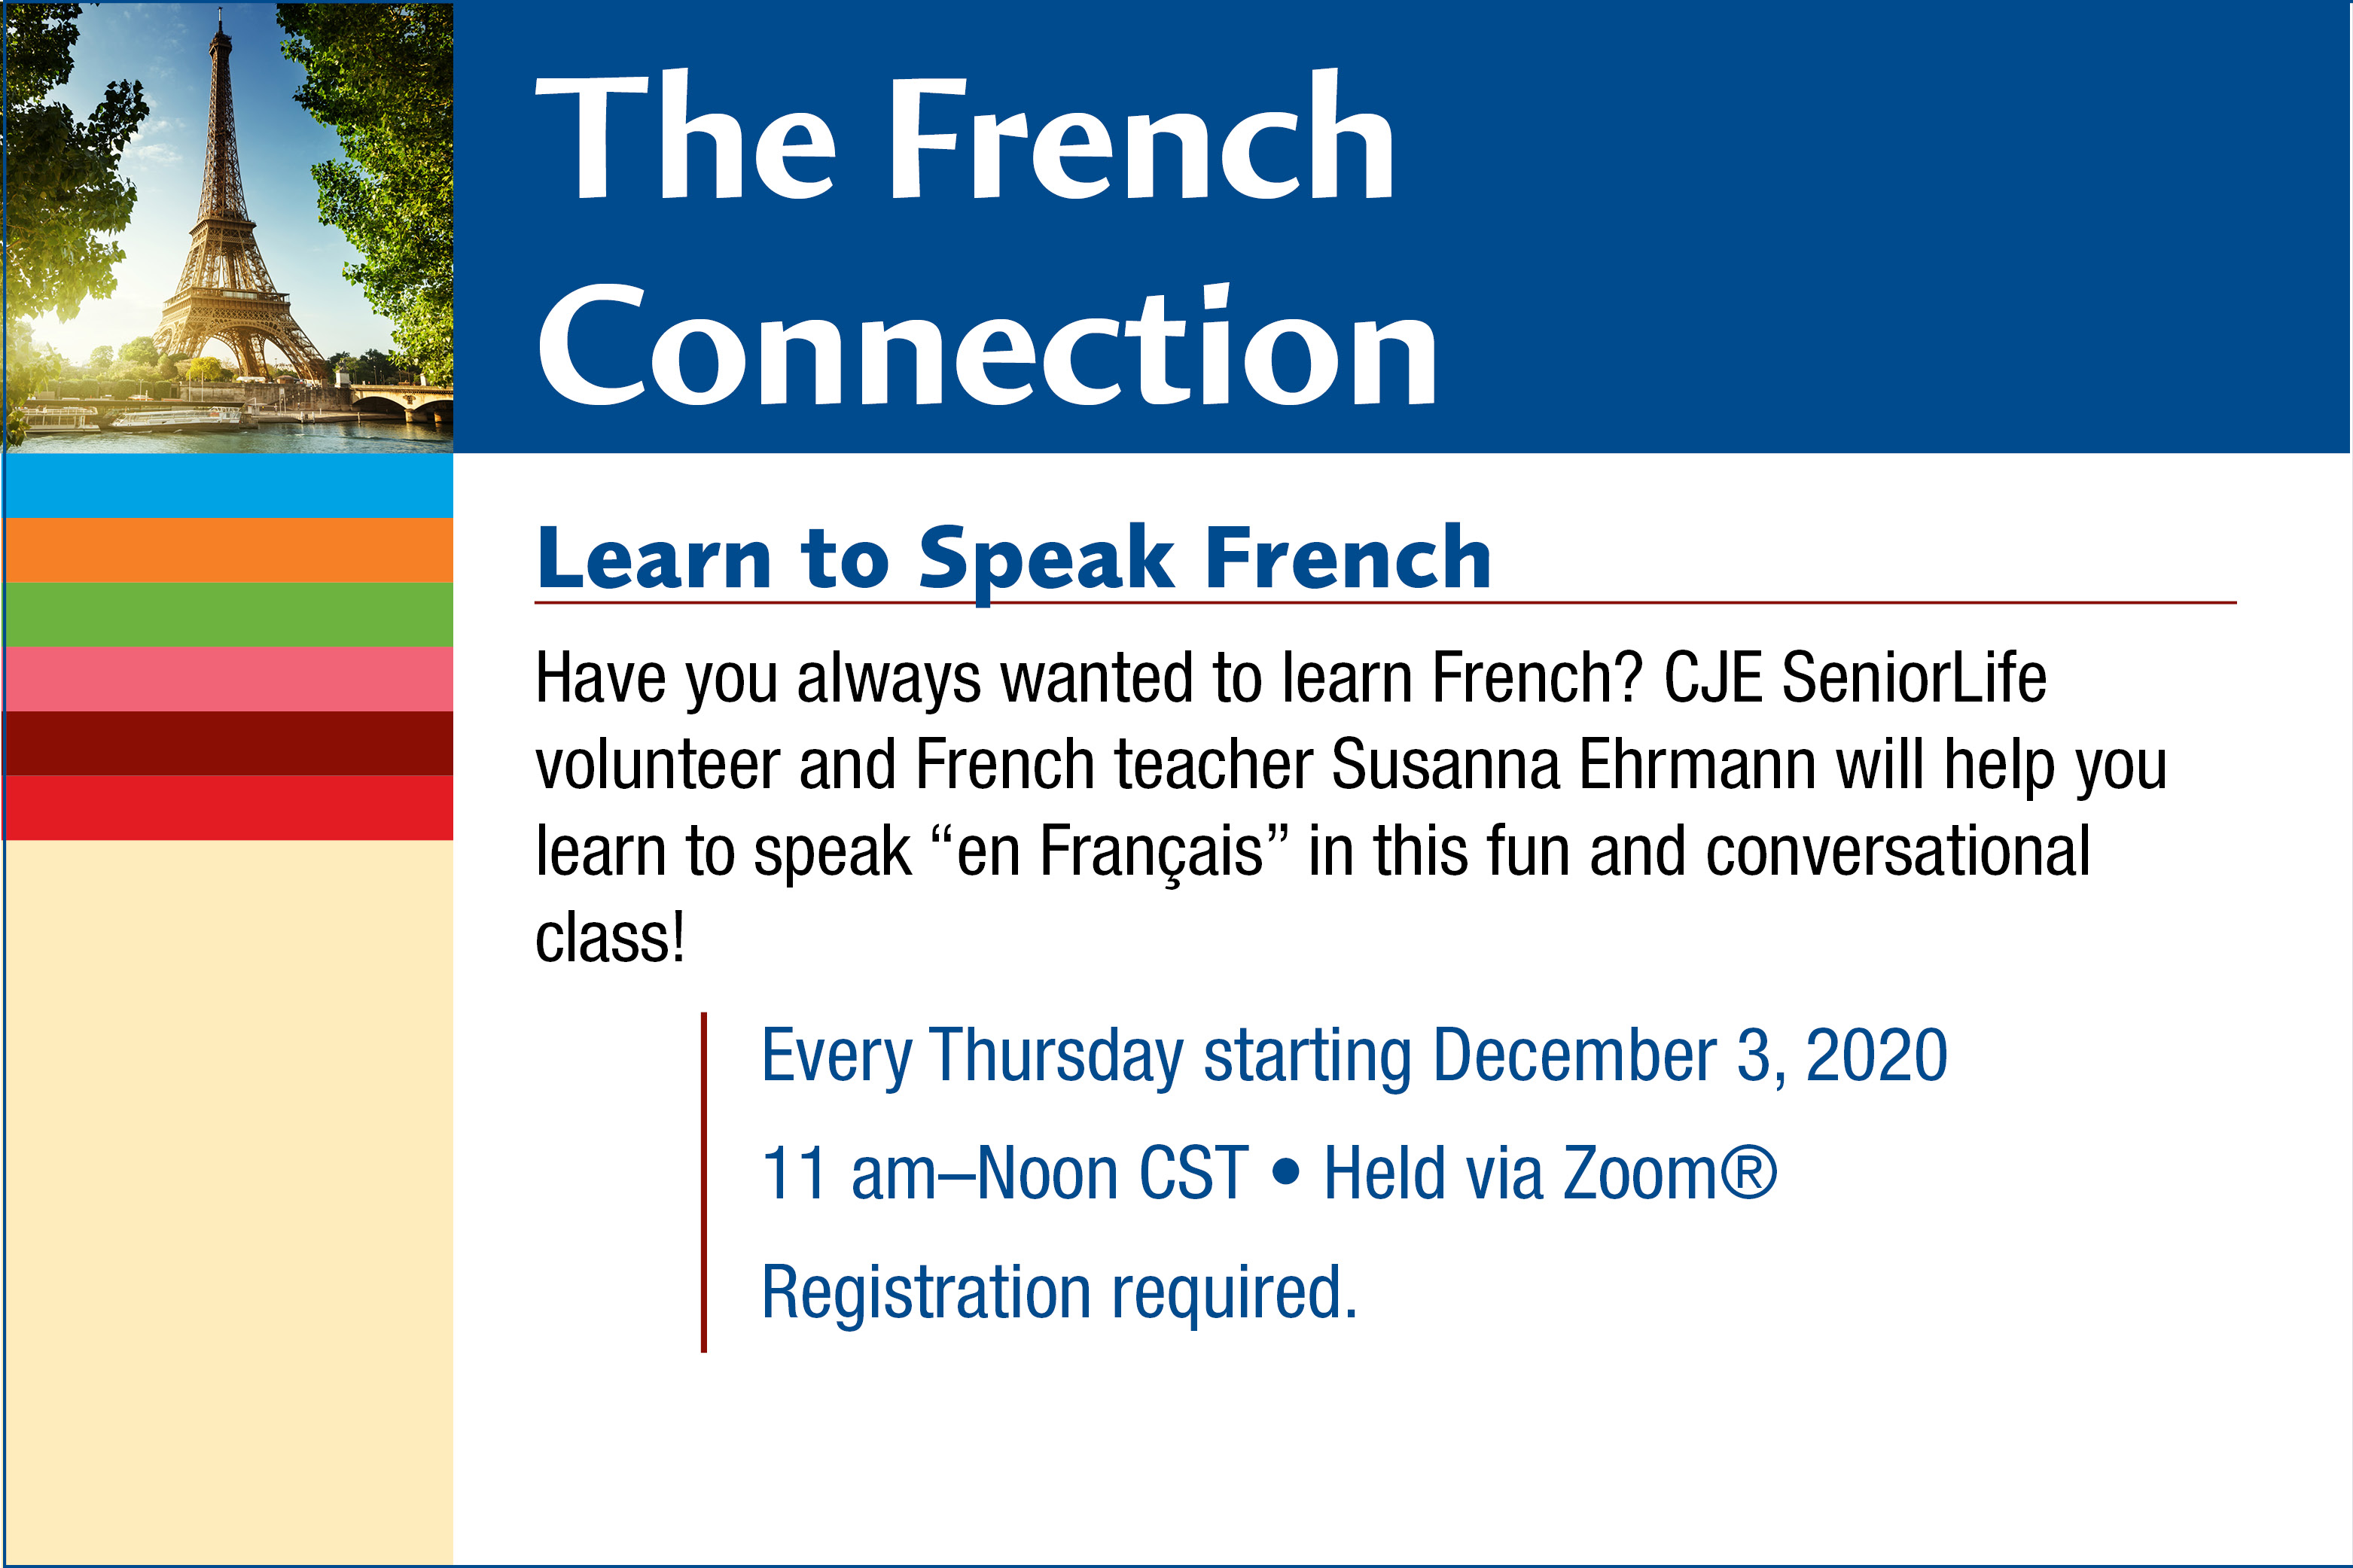 Learn to Speak French with Susanna Ehrmann